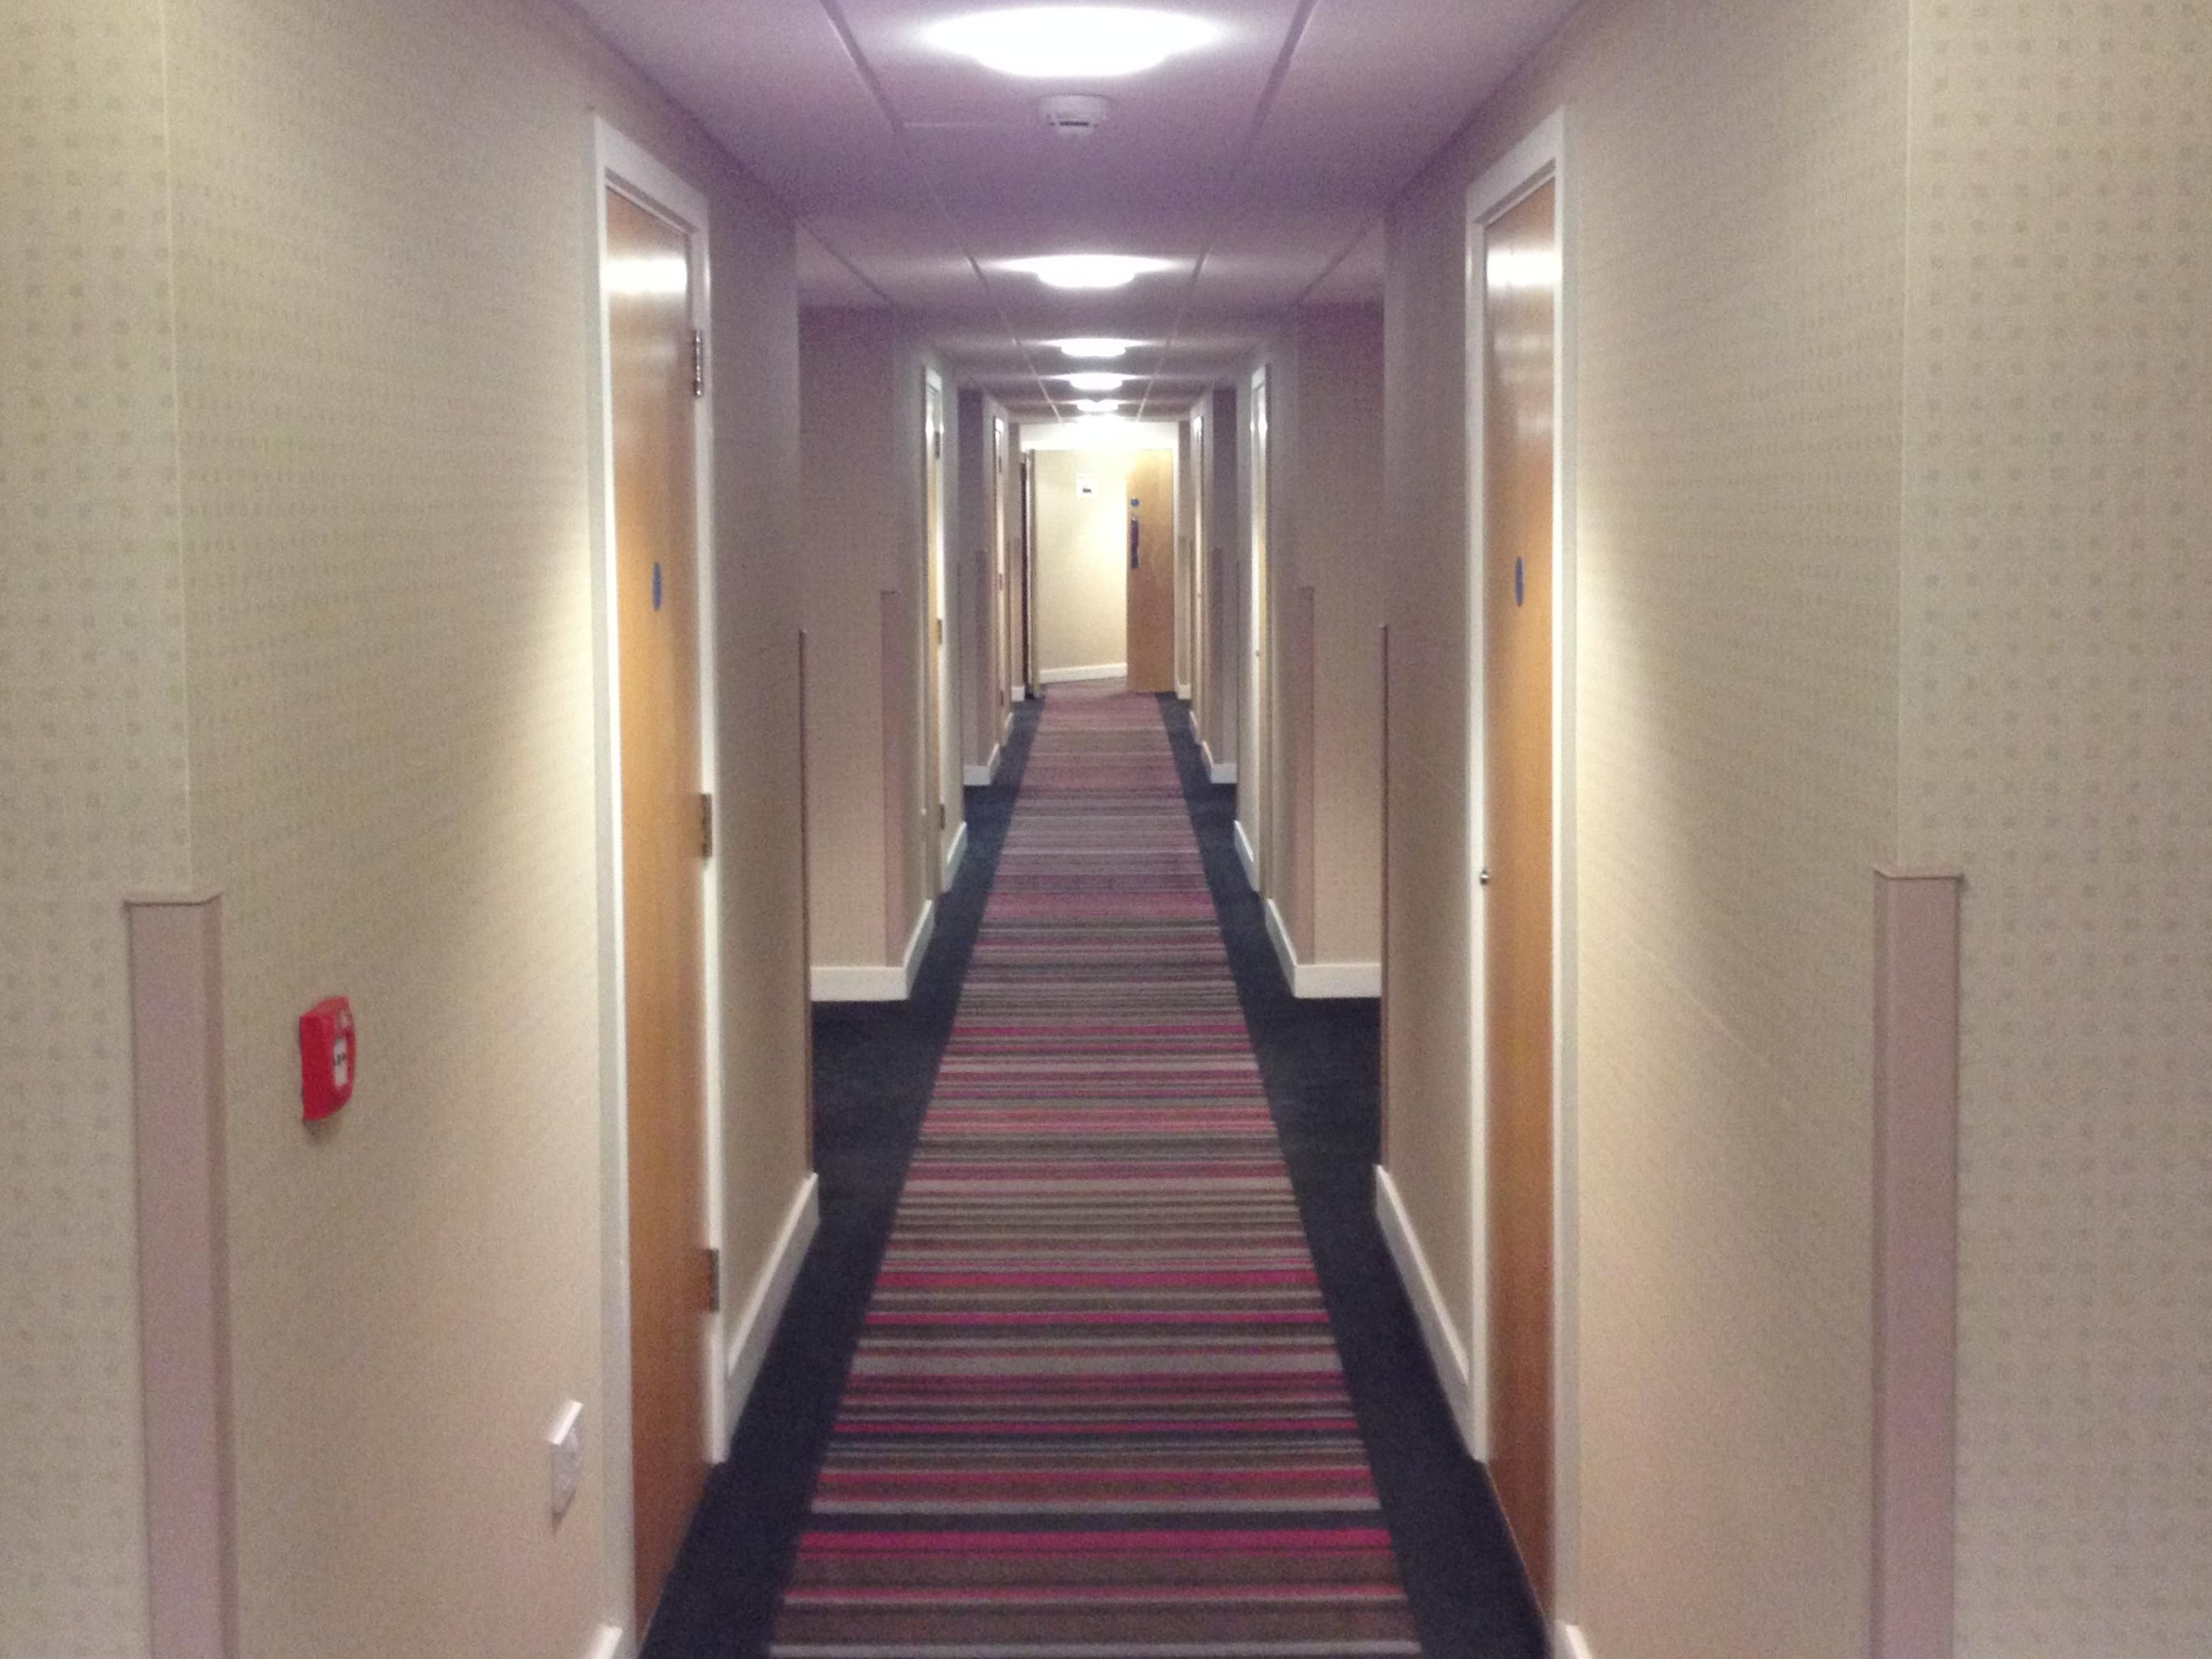 View of an internal corridor